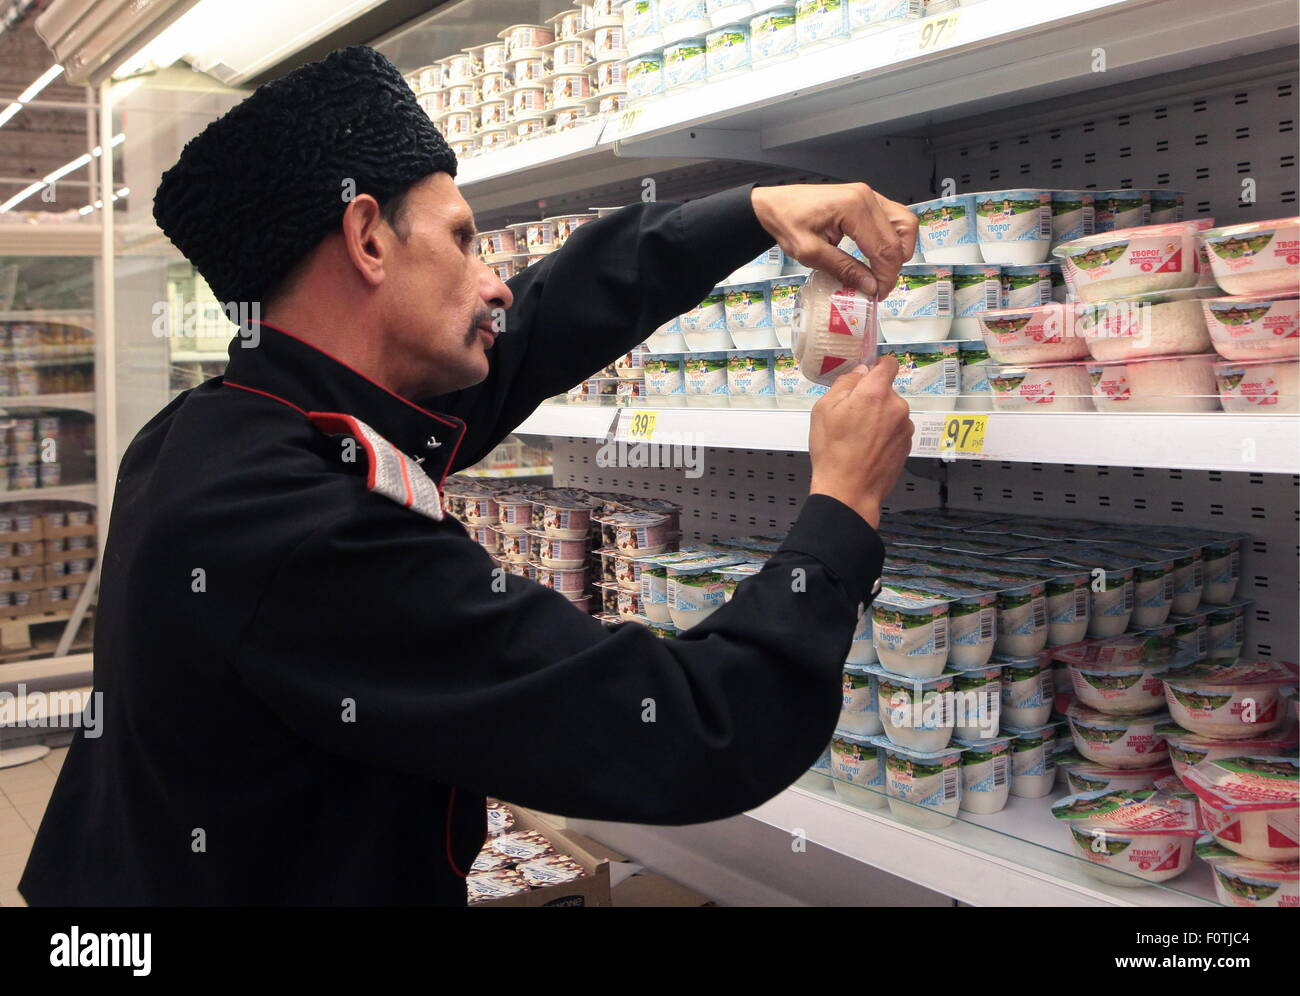 Pugachev with children captured in a regular supermarket